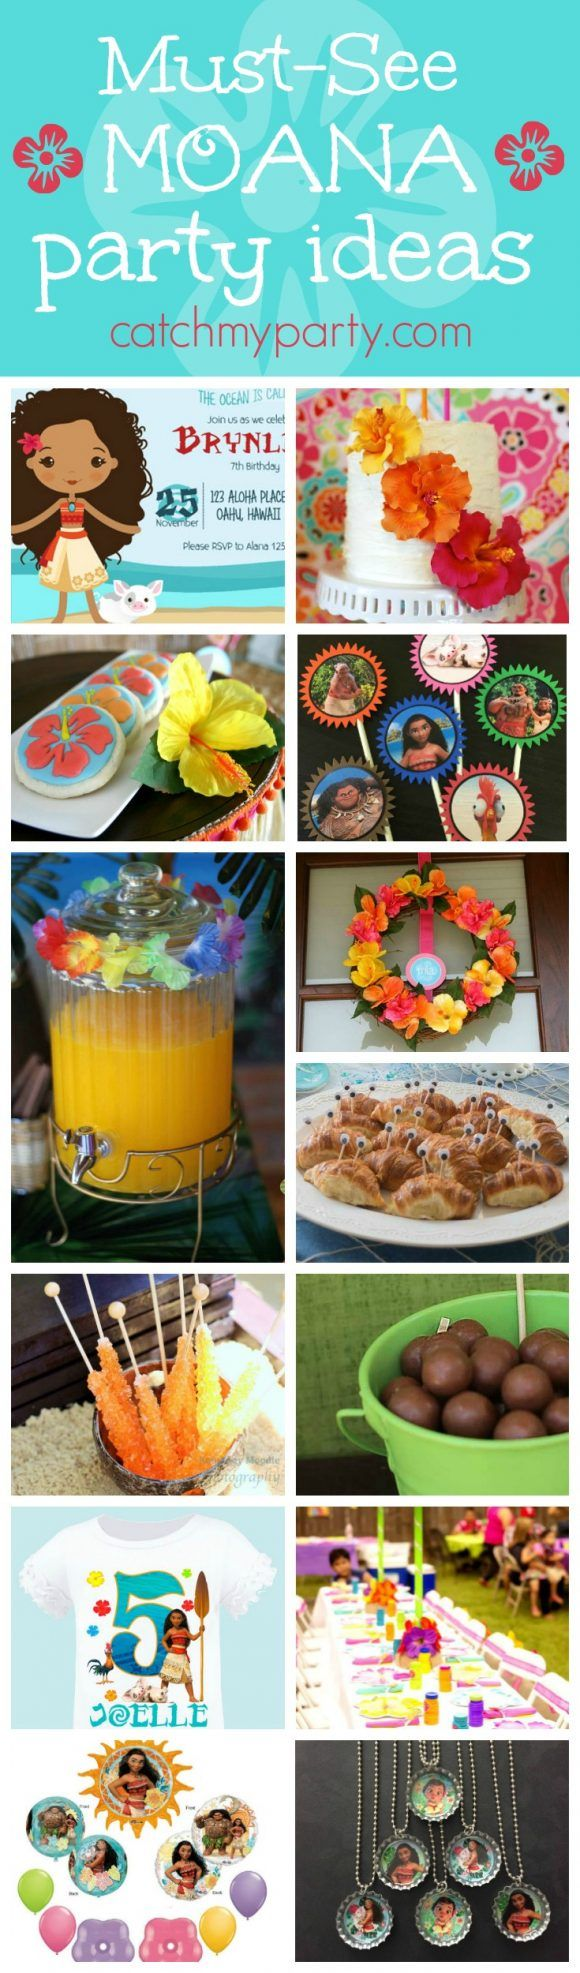 281 best Moana Birthday Party Ideas images on Pinterest